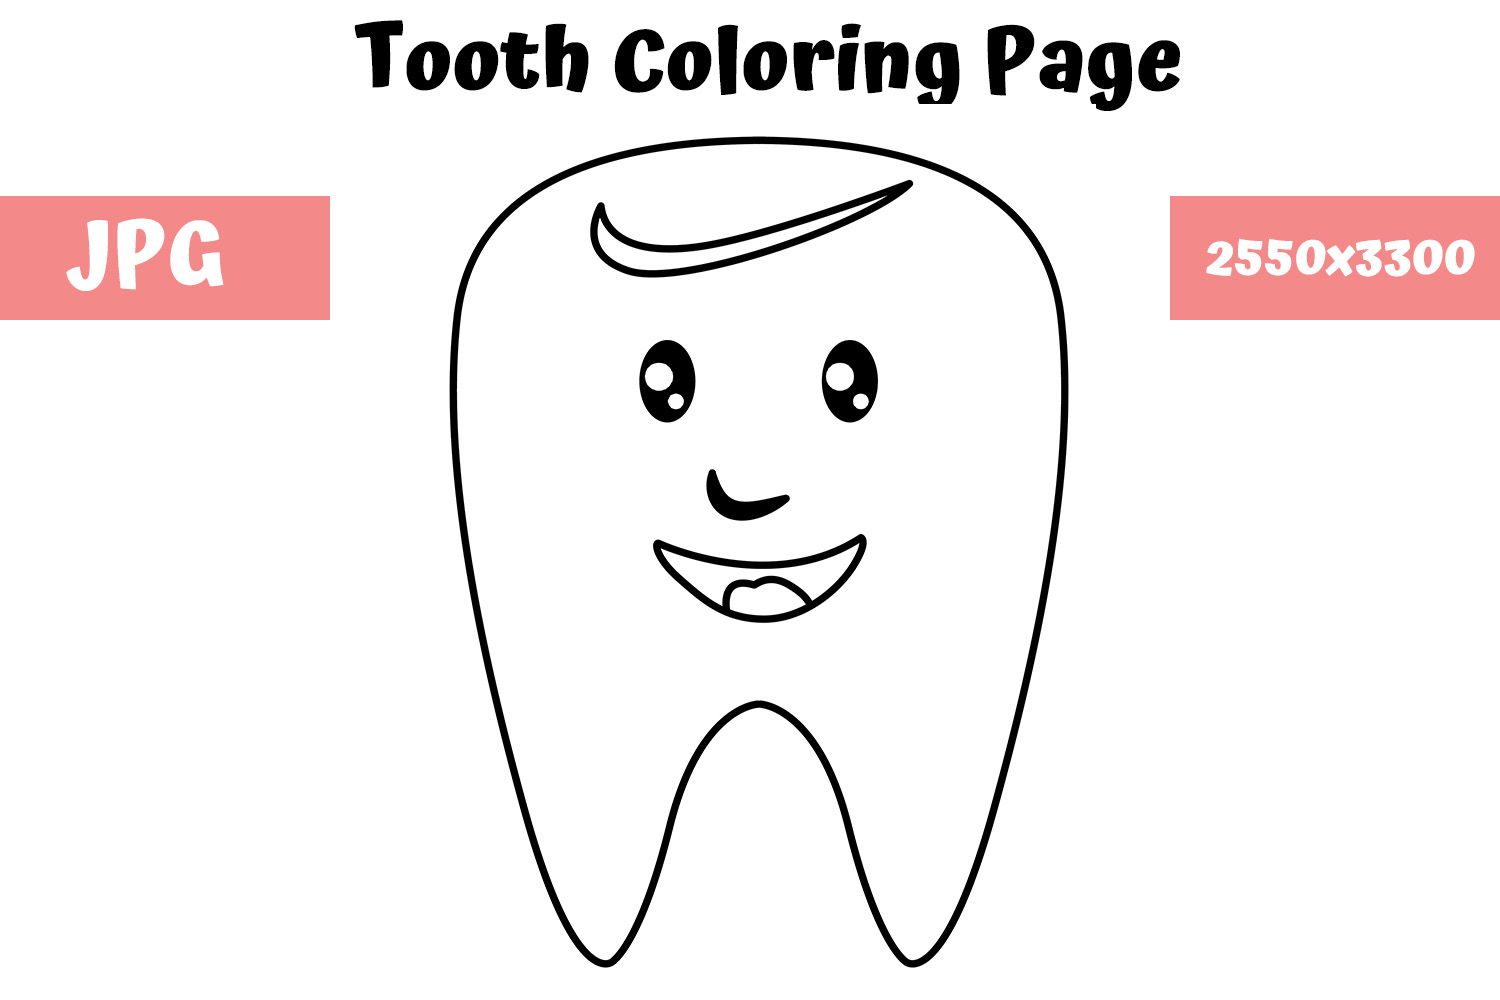 Tooth Cartoon Pictures Of Teeth Coloring Page | Tooth cartoon ... | 1000x1500